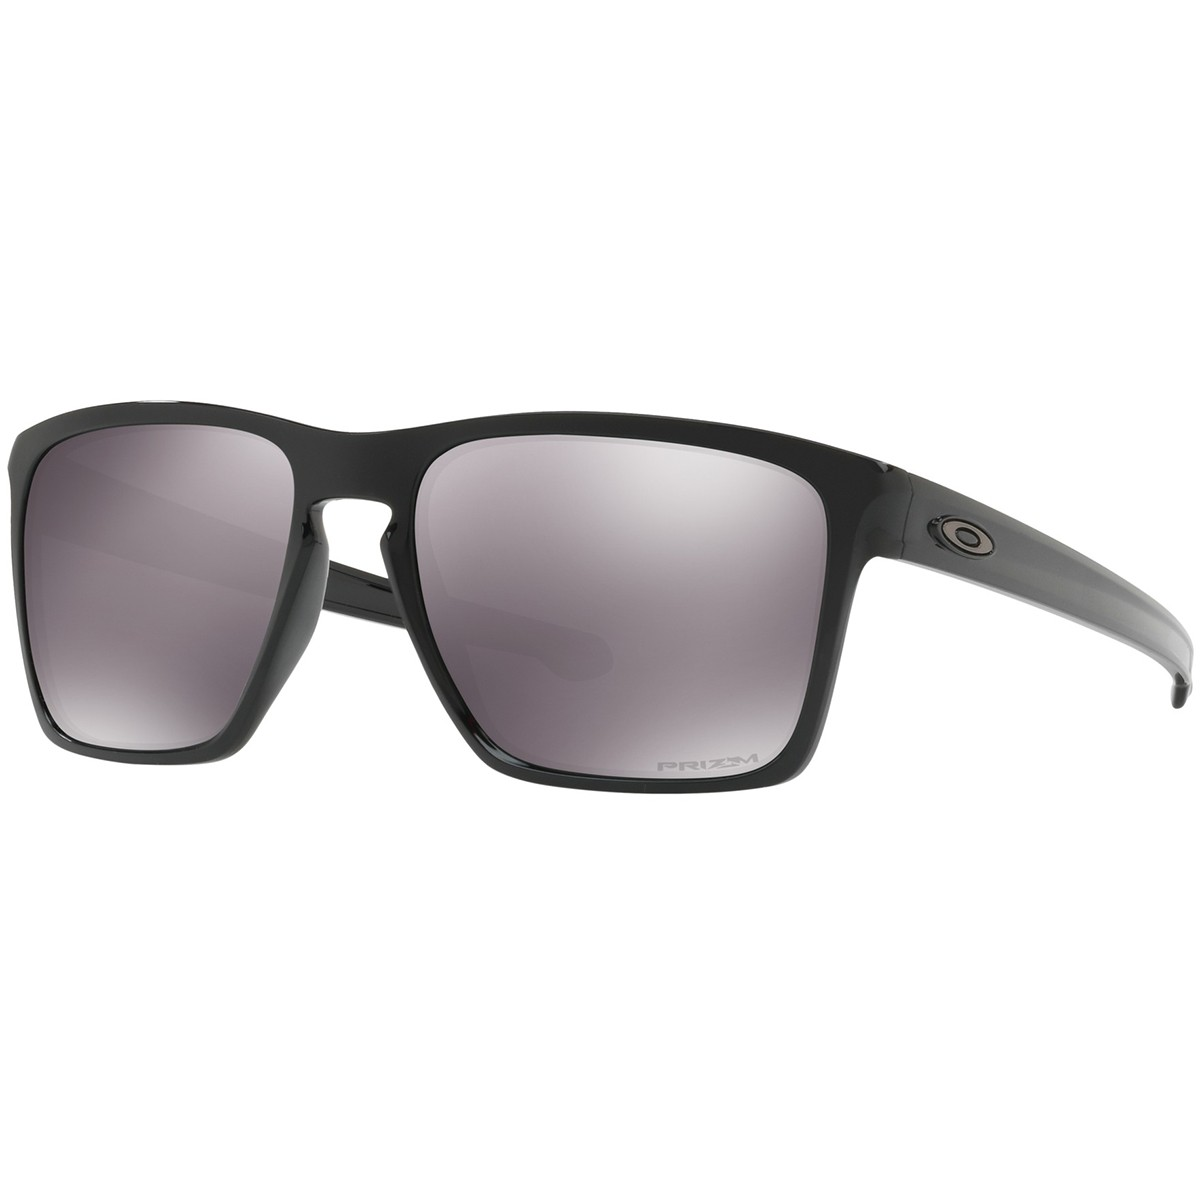 3f4a0a7f56 Oakley High Definition Optics Hdo « One More Soul